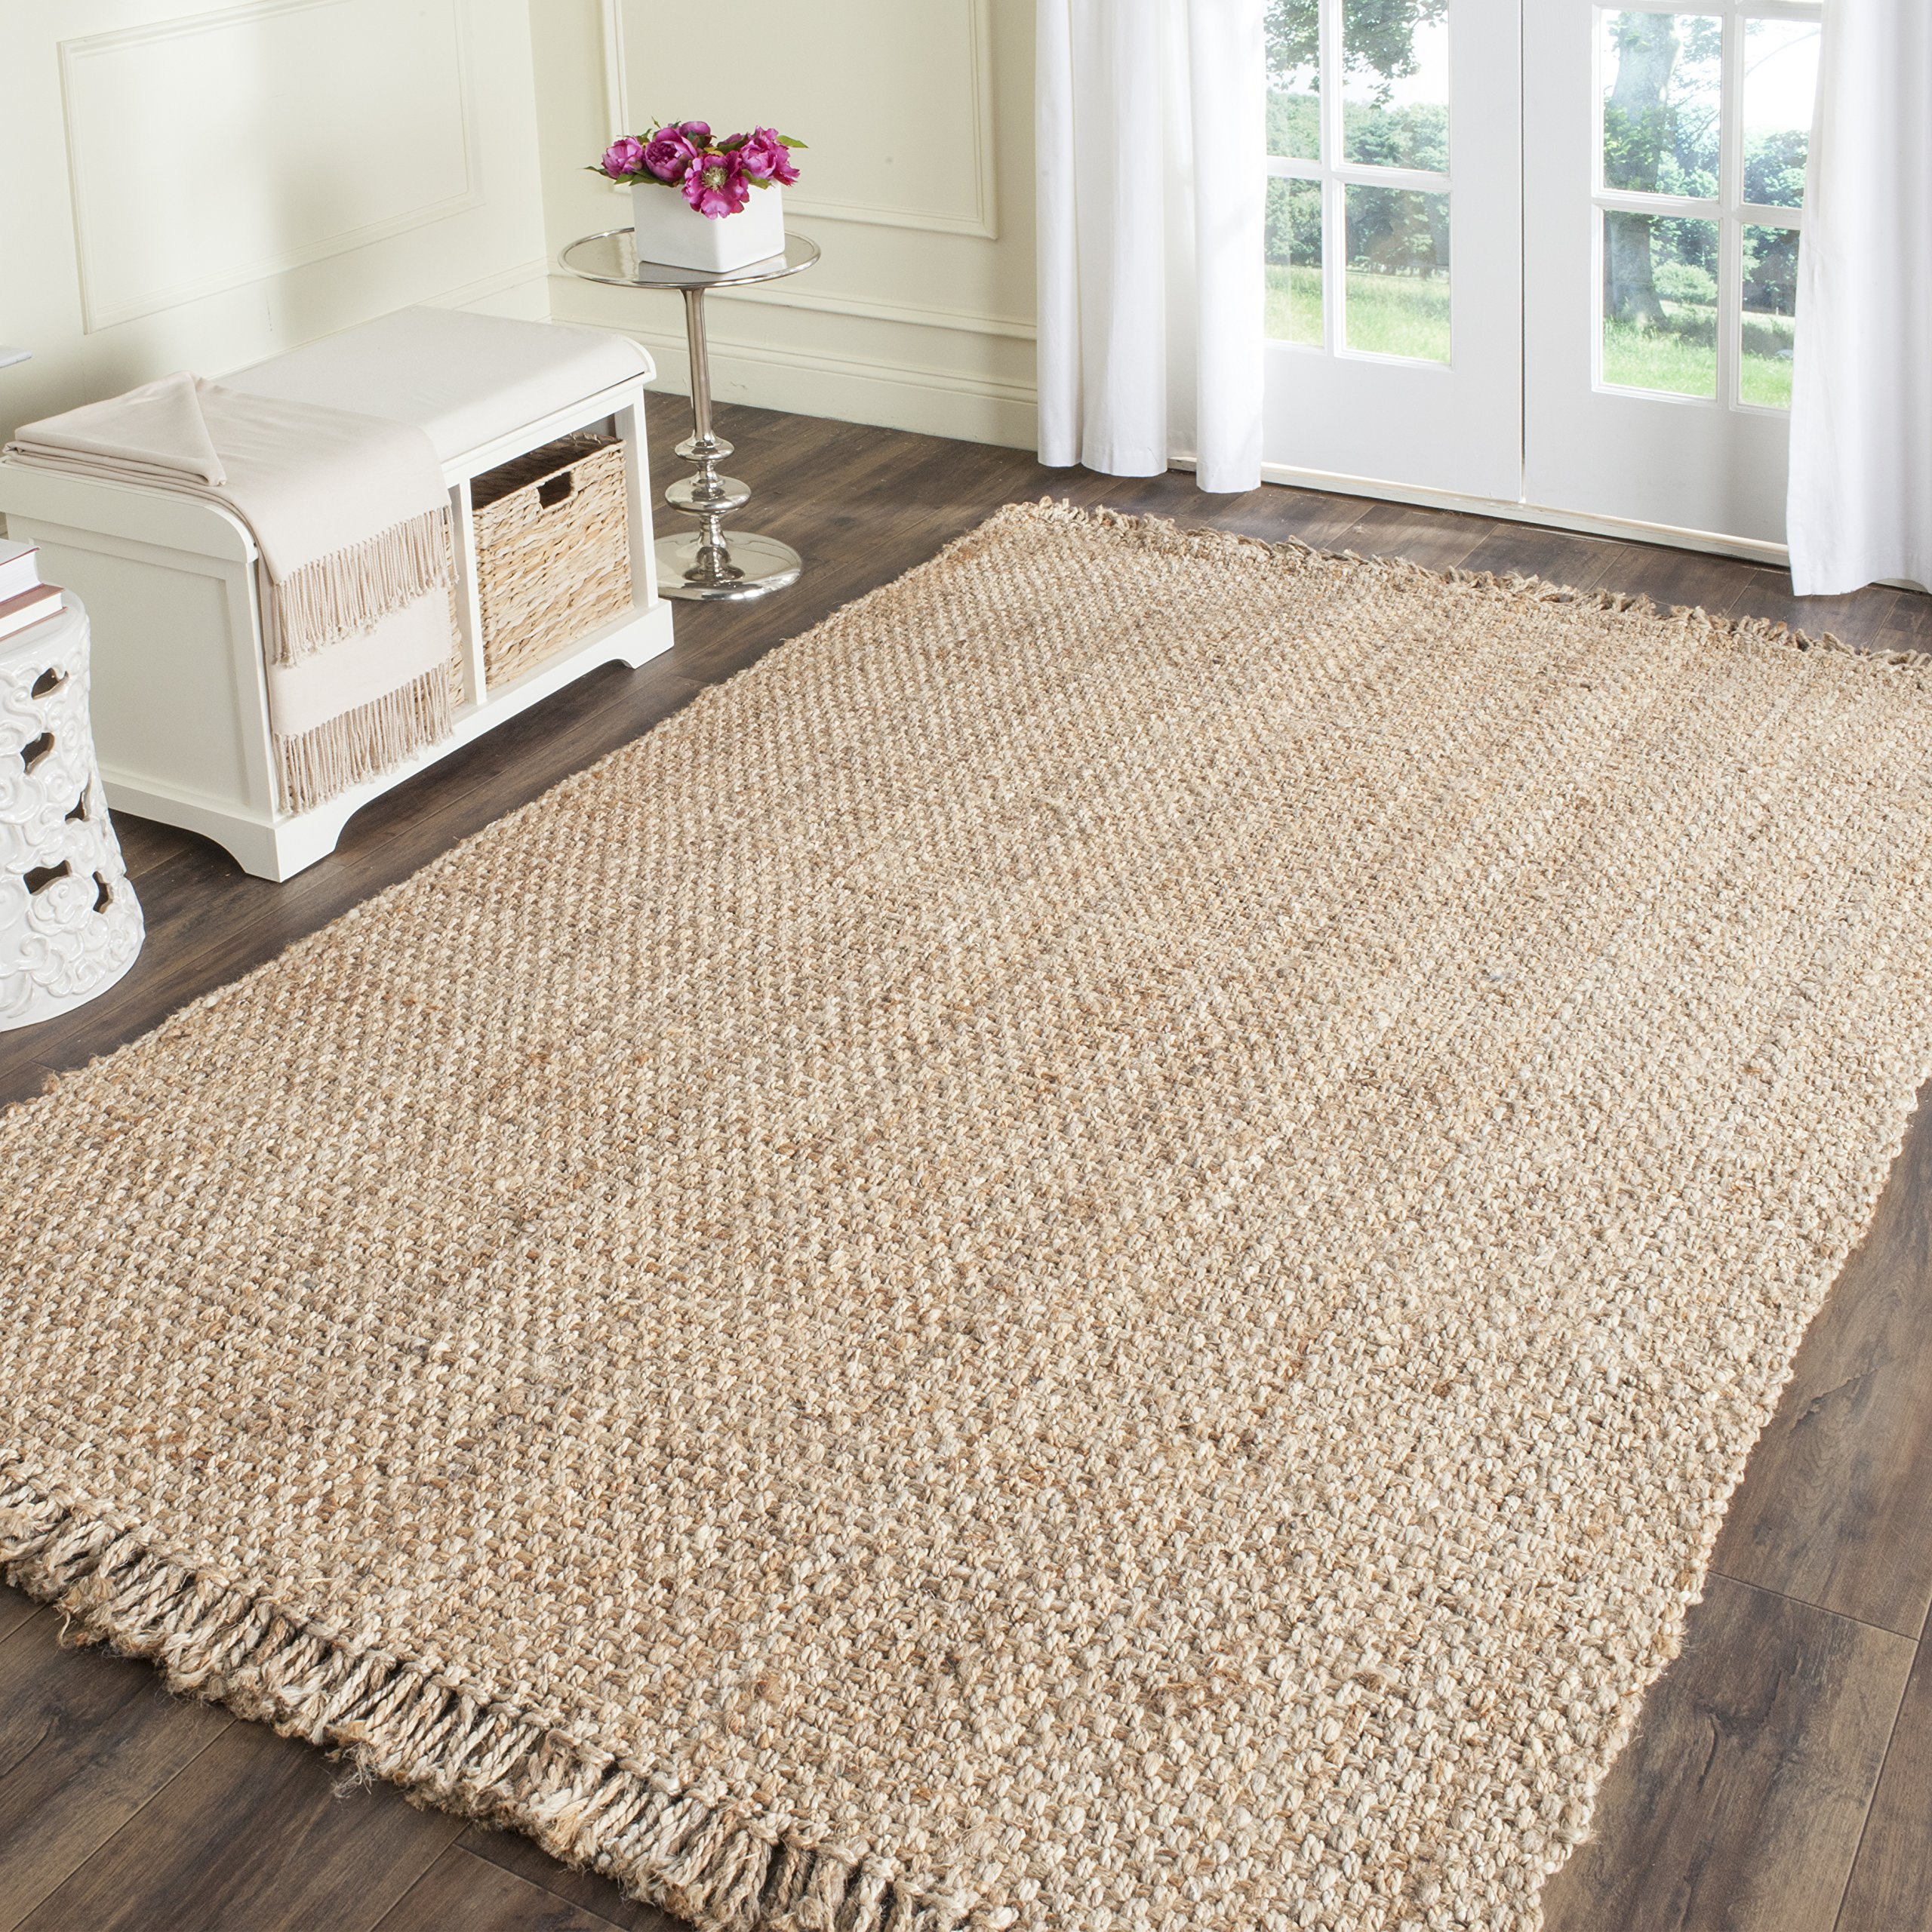 Safavieh Natural Fiber Collection NF467A Hand Woven Natural Jute Area Rug (5' x 8')